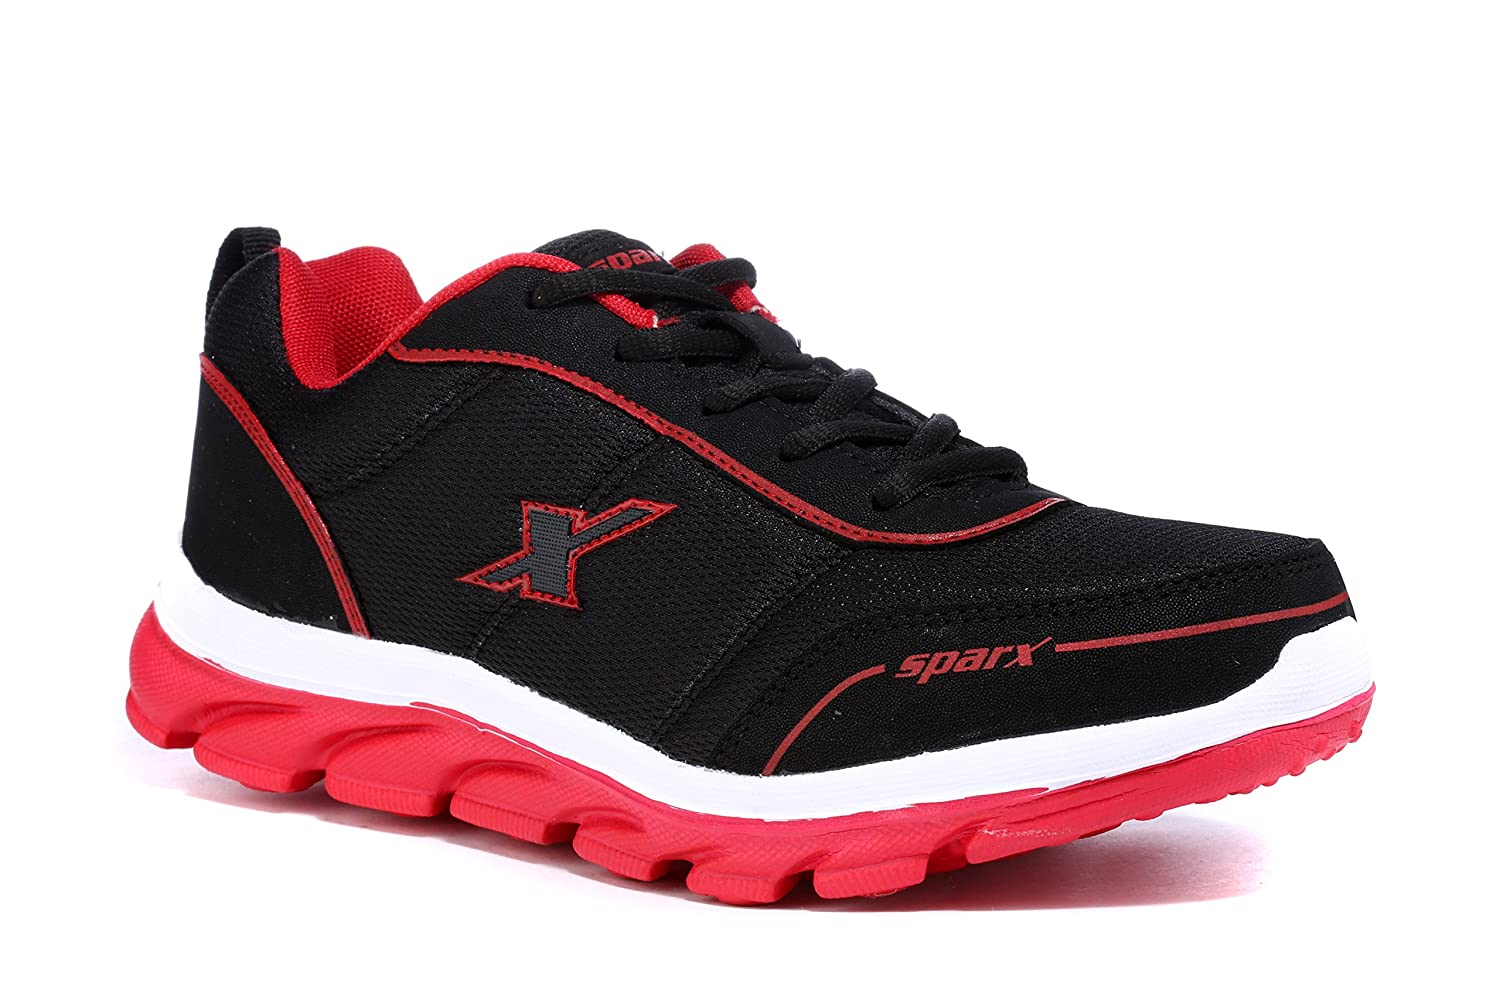 Sparx Men's Black and Red Sports Shoes